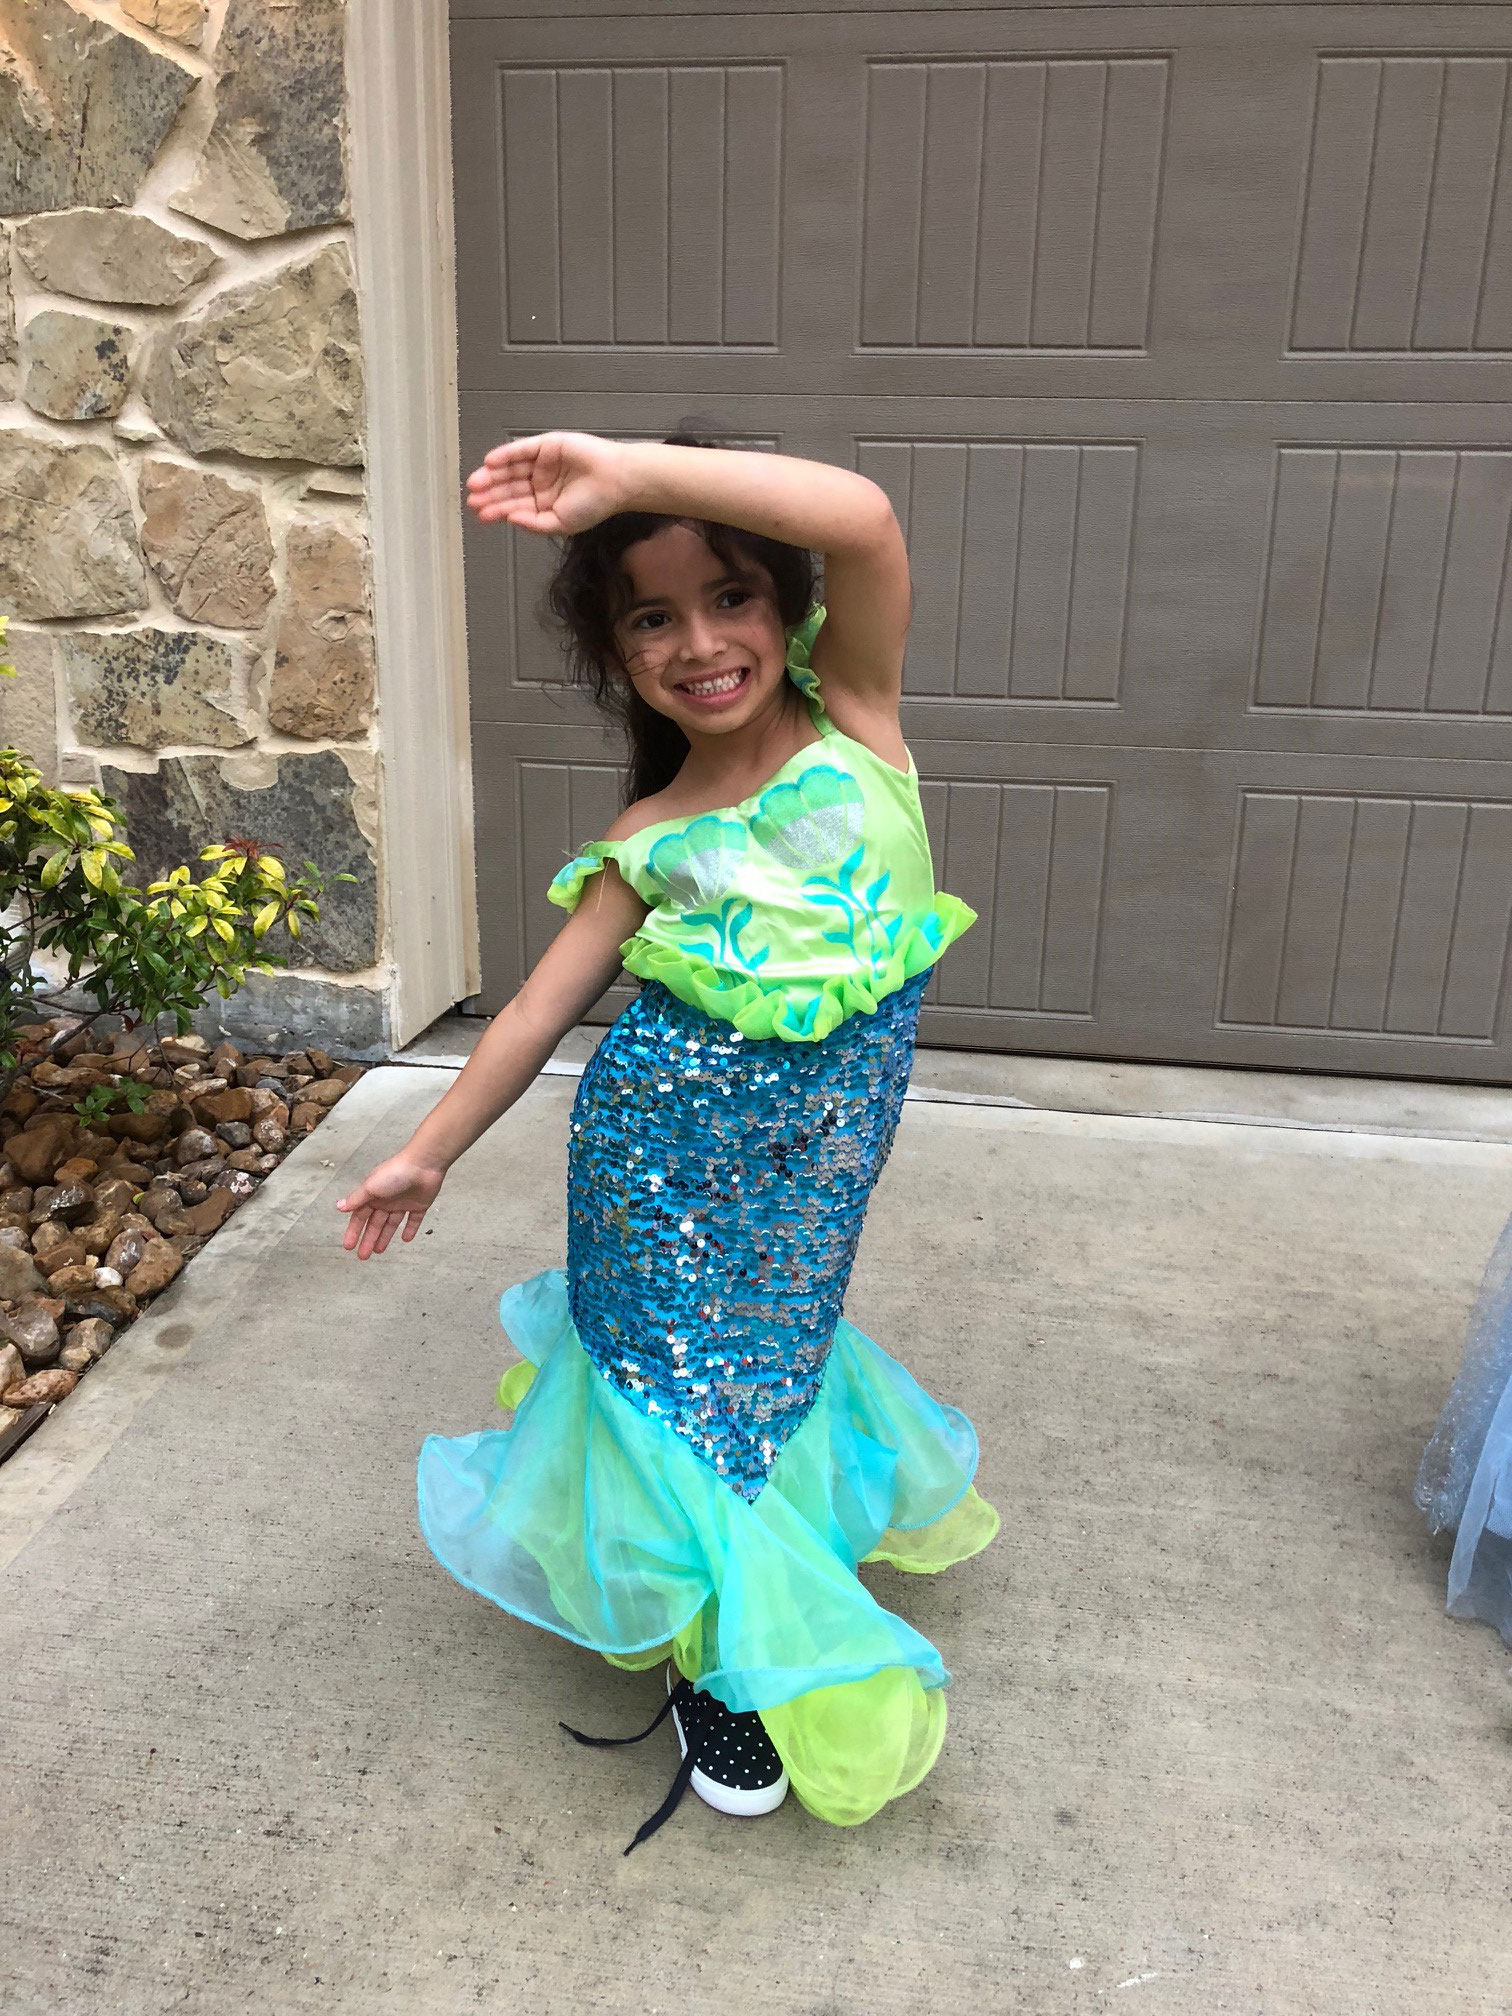 "<div class=""meta image-caption""><div class=""origin-logo origin-image none""><span>none</span></div><span class=""caption-text"">UNDER THE SEA: One of Patricia Lopez's daughters shows off her best mermaid pose.</span></div>"